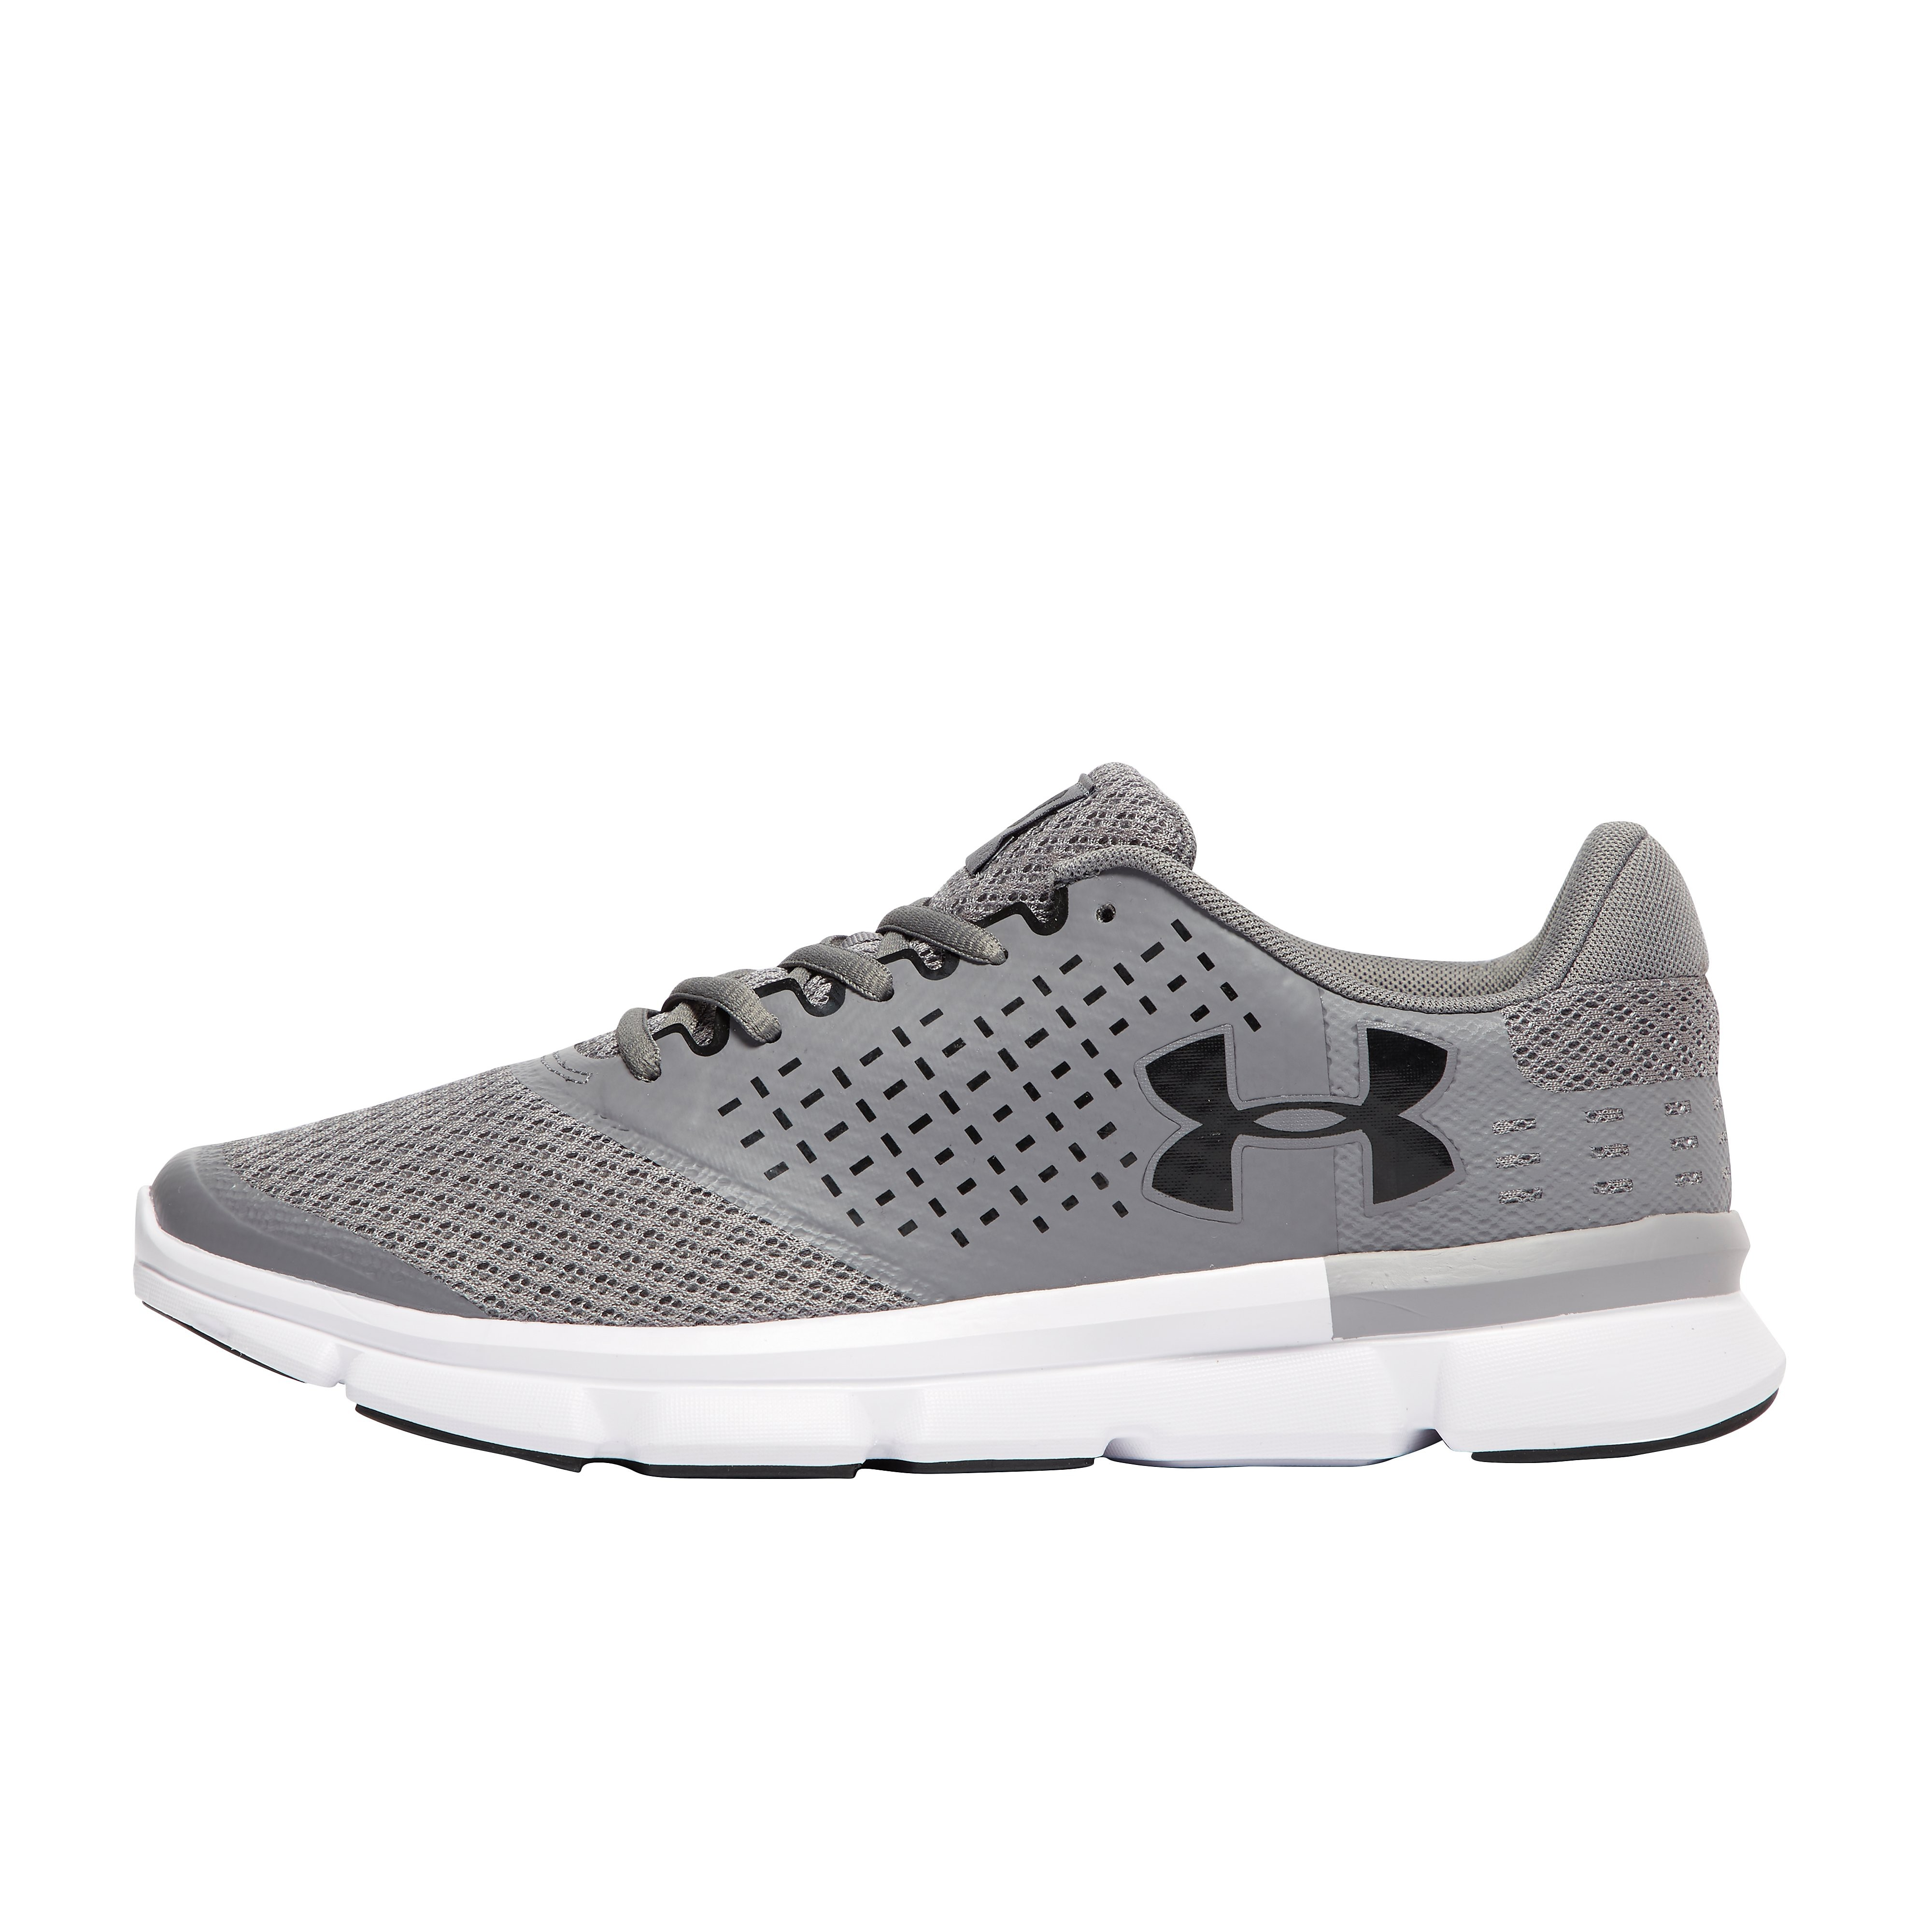 Men's Under Armour Micro G Speed Swift Running Shoes - Grey/Black, Grey/Black